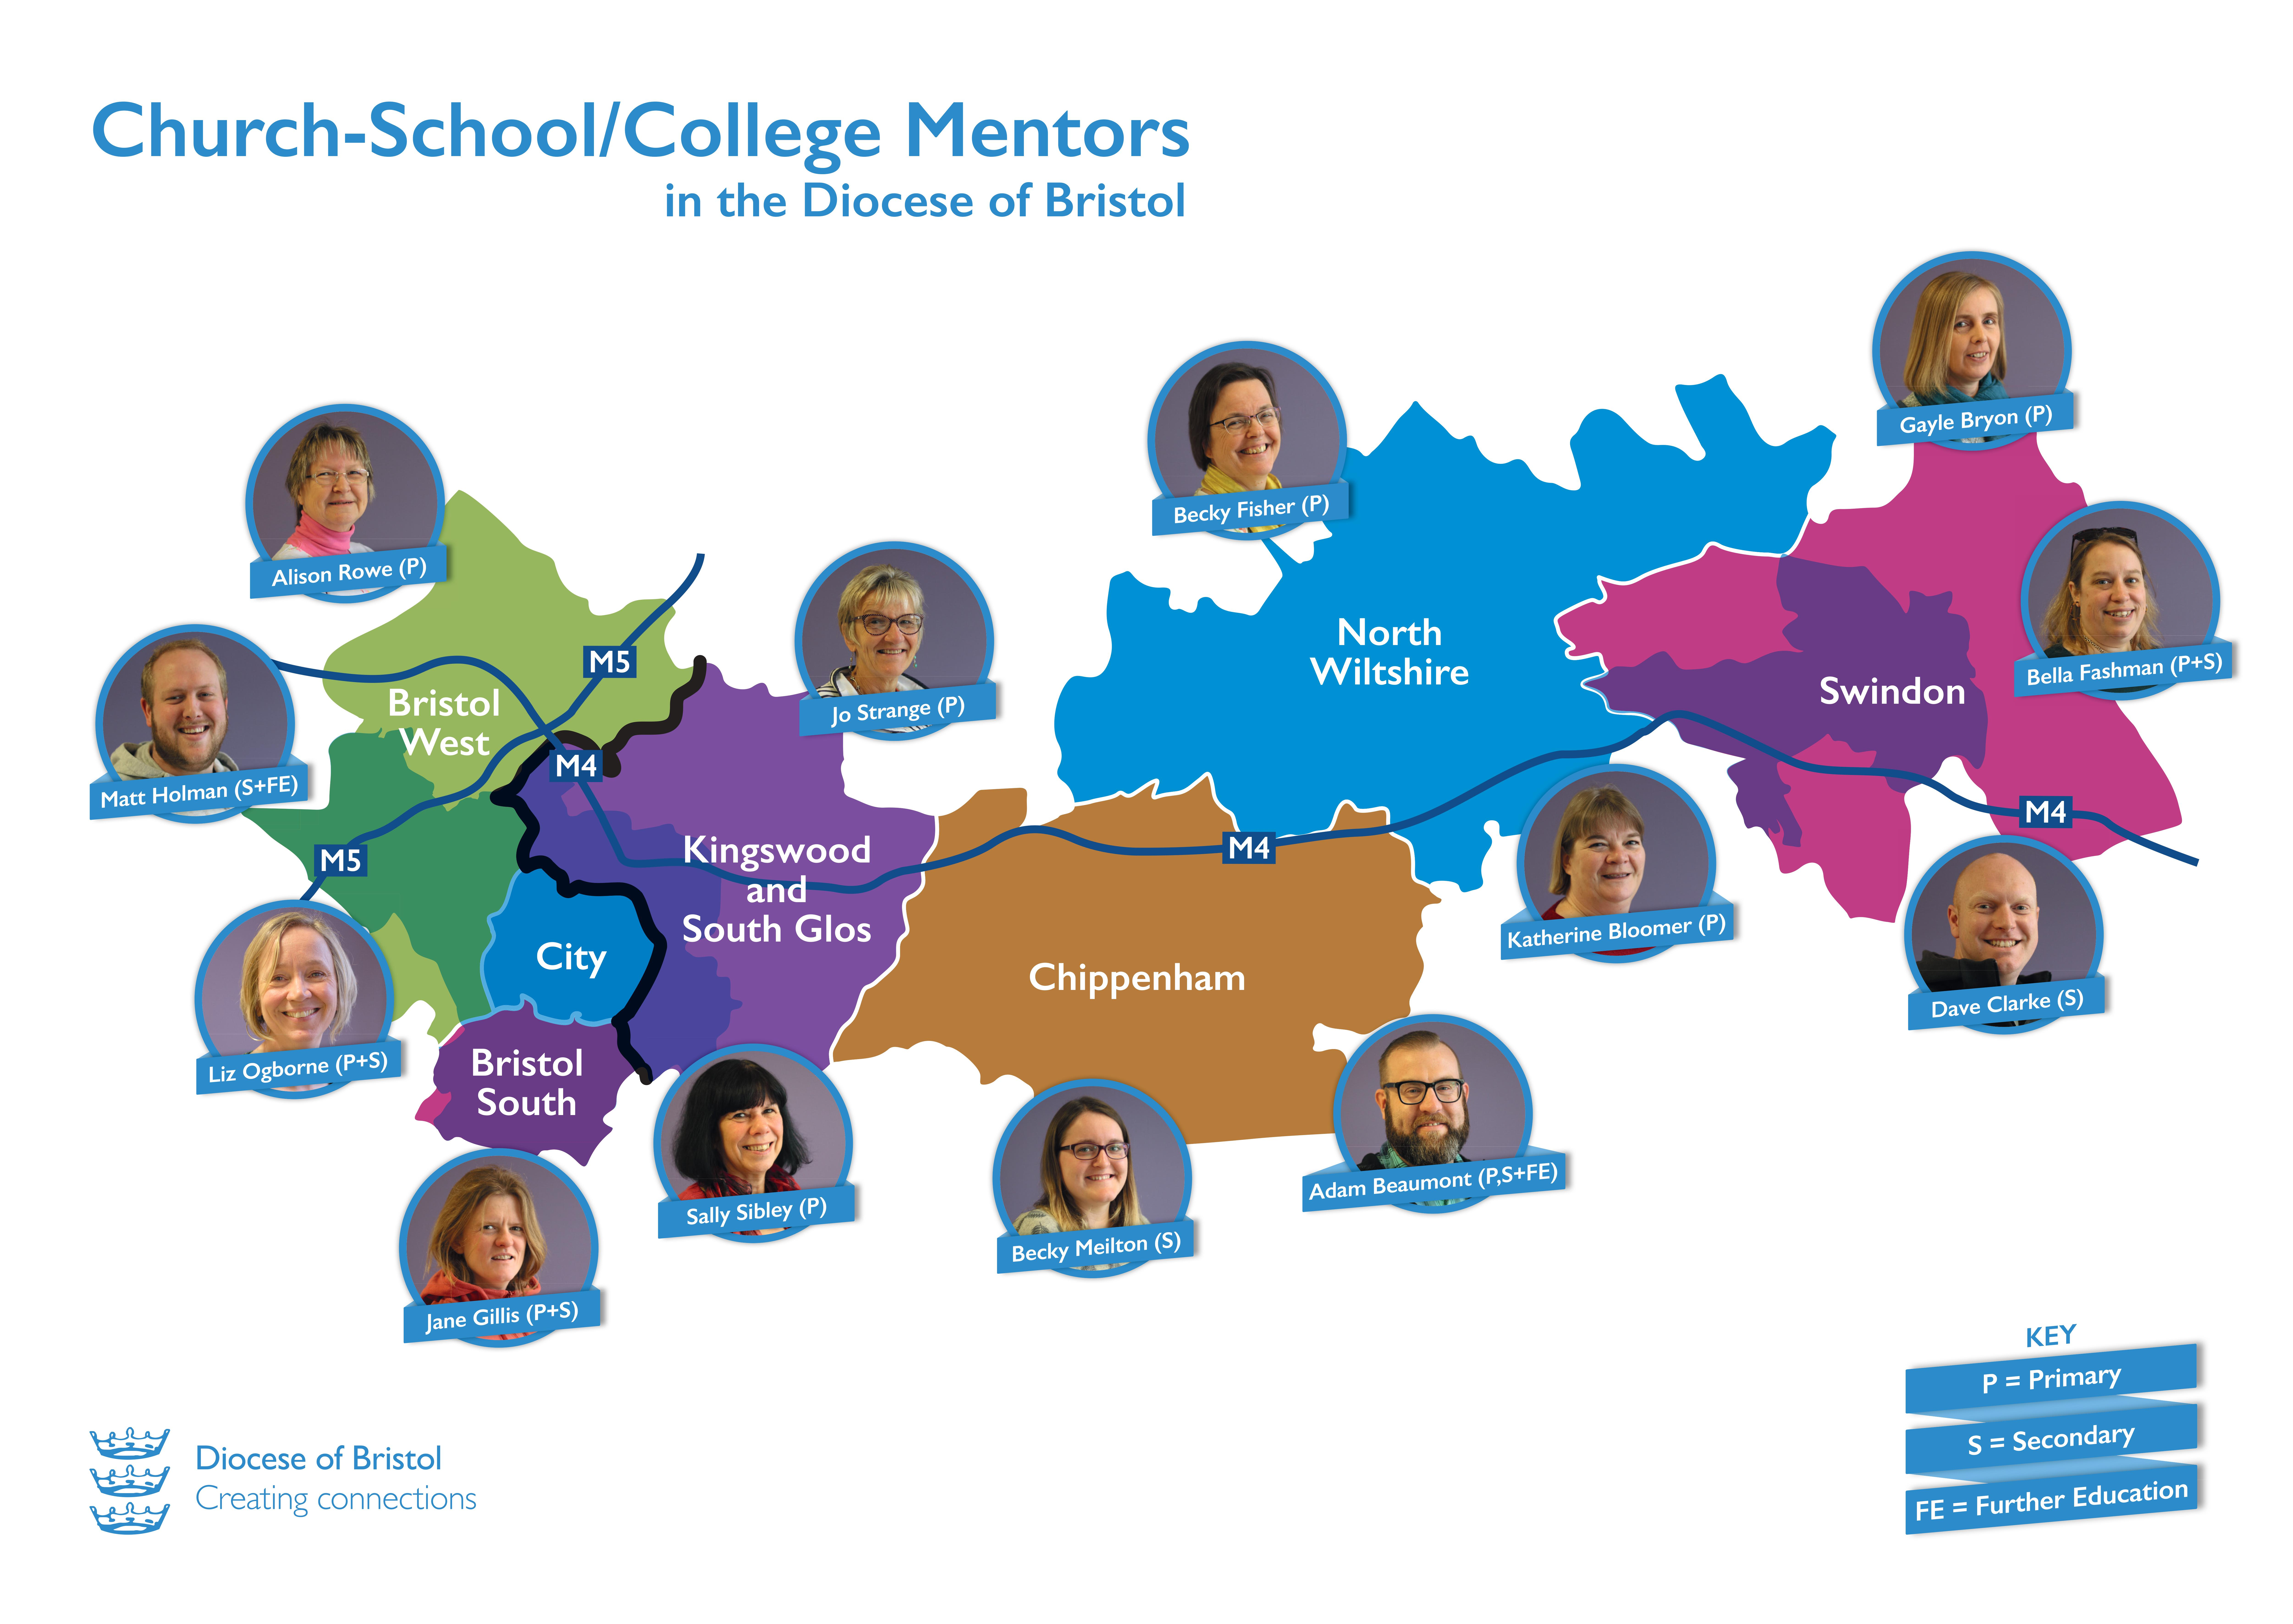 Open Mentors to support churches engaging with schools and colleges